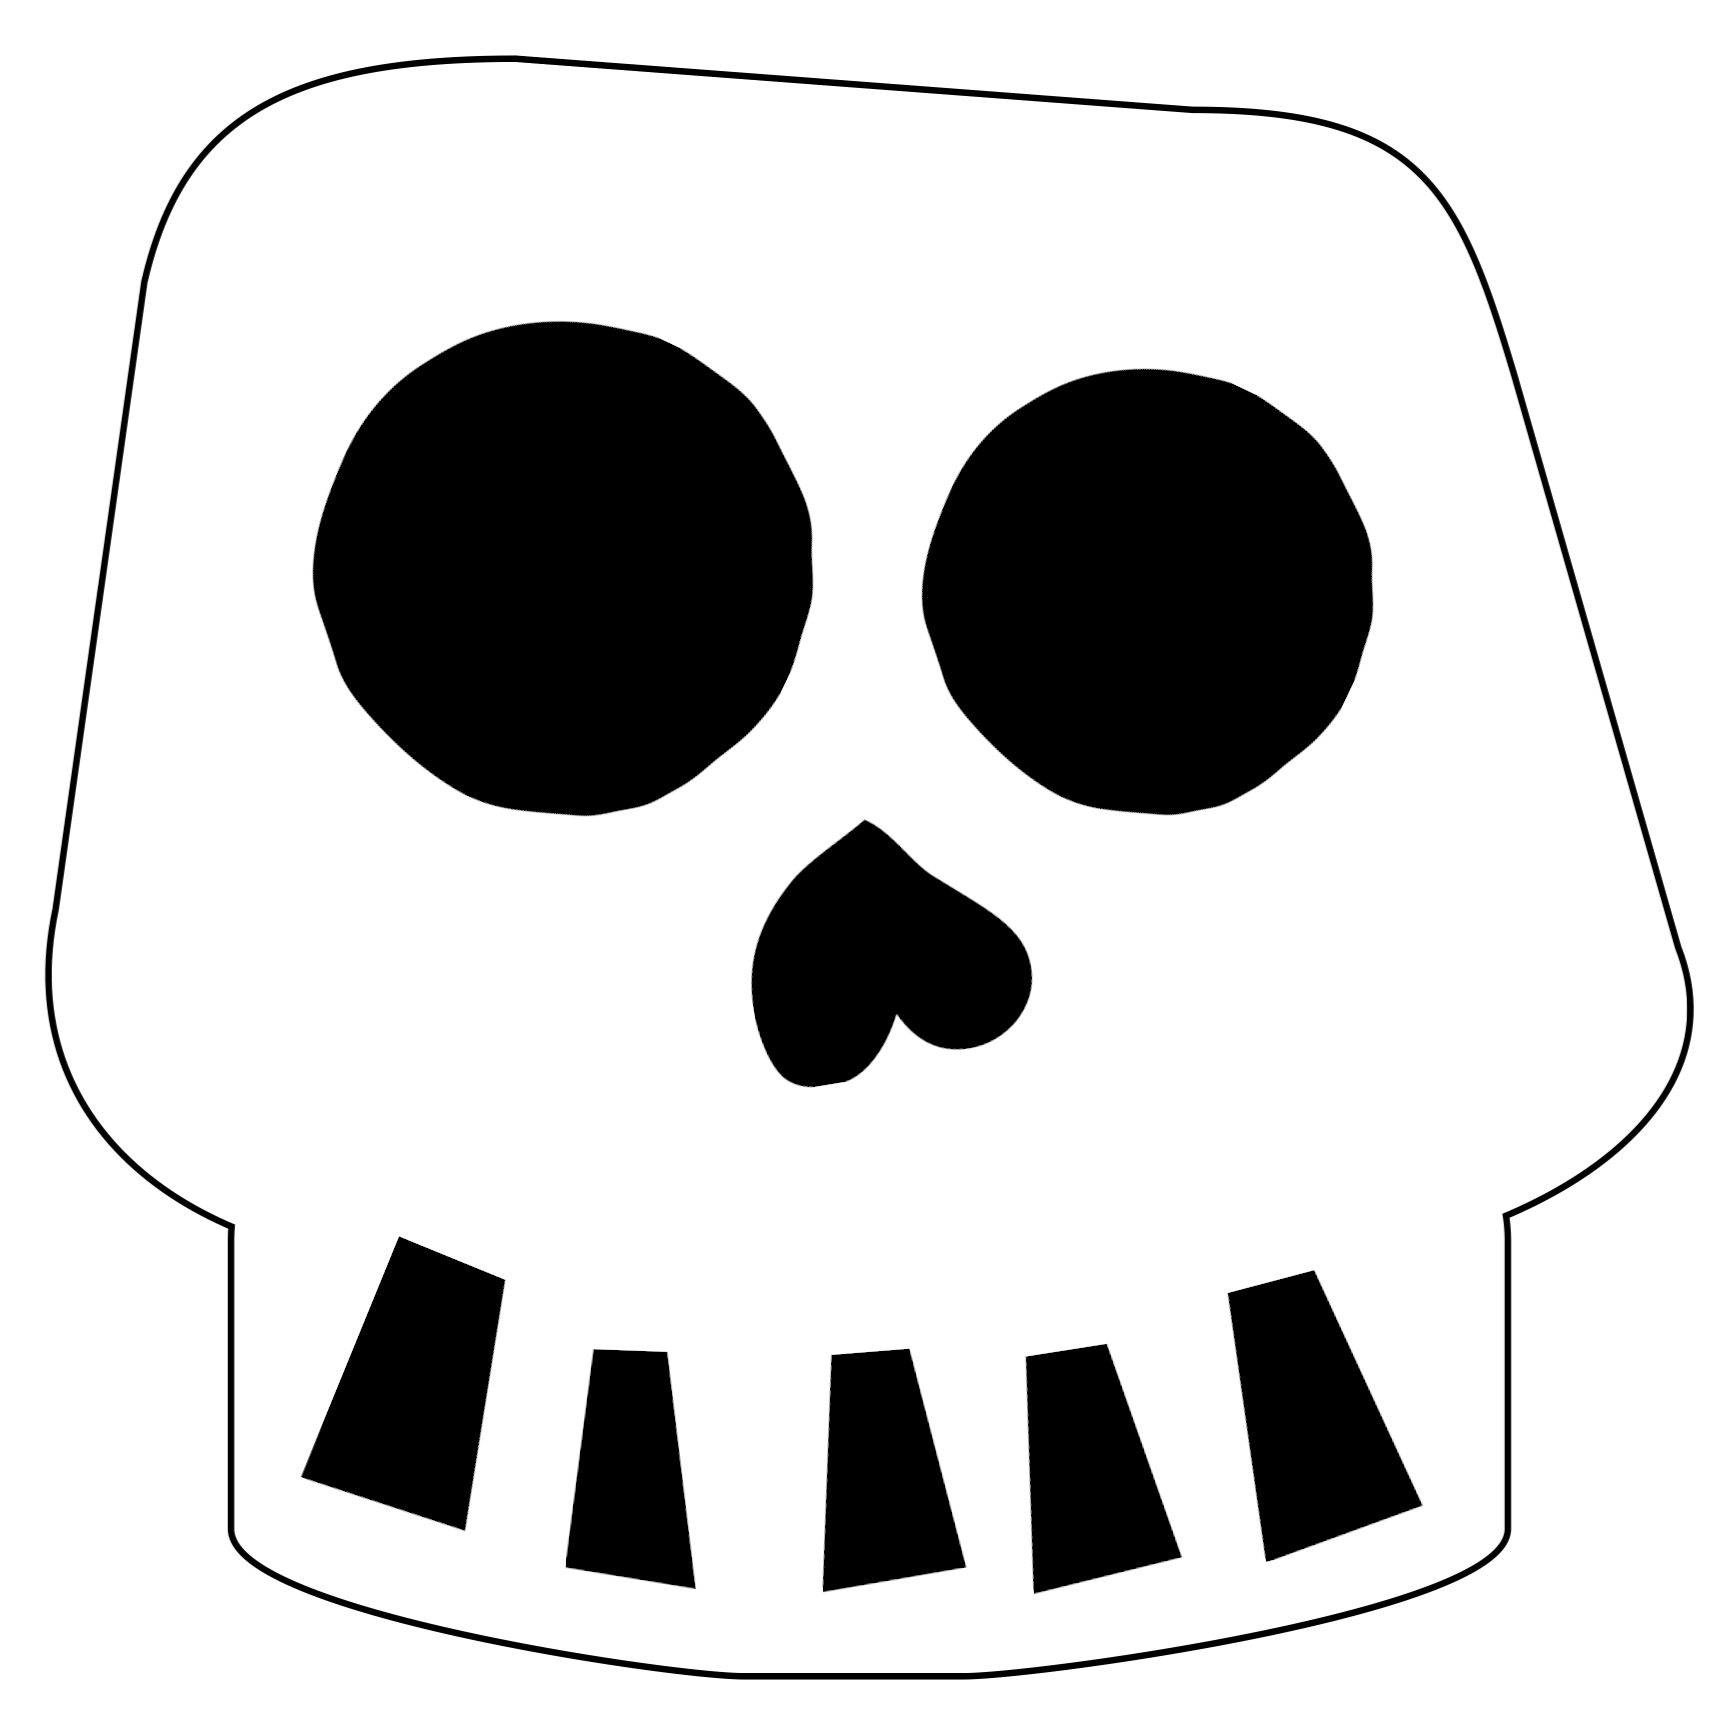 Free Printable Halloween Skull Decoration Banner Or Day Of The Dead Template